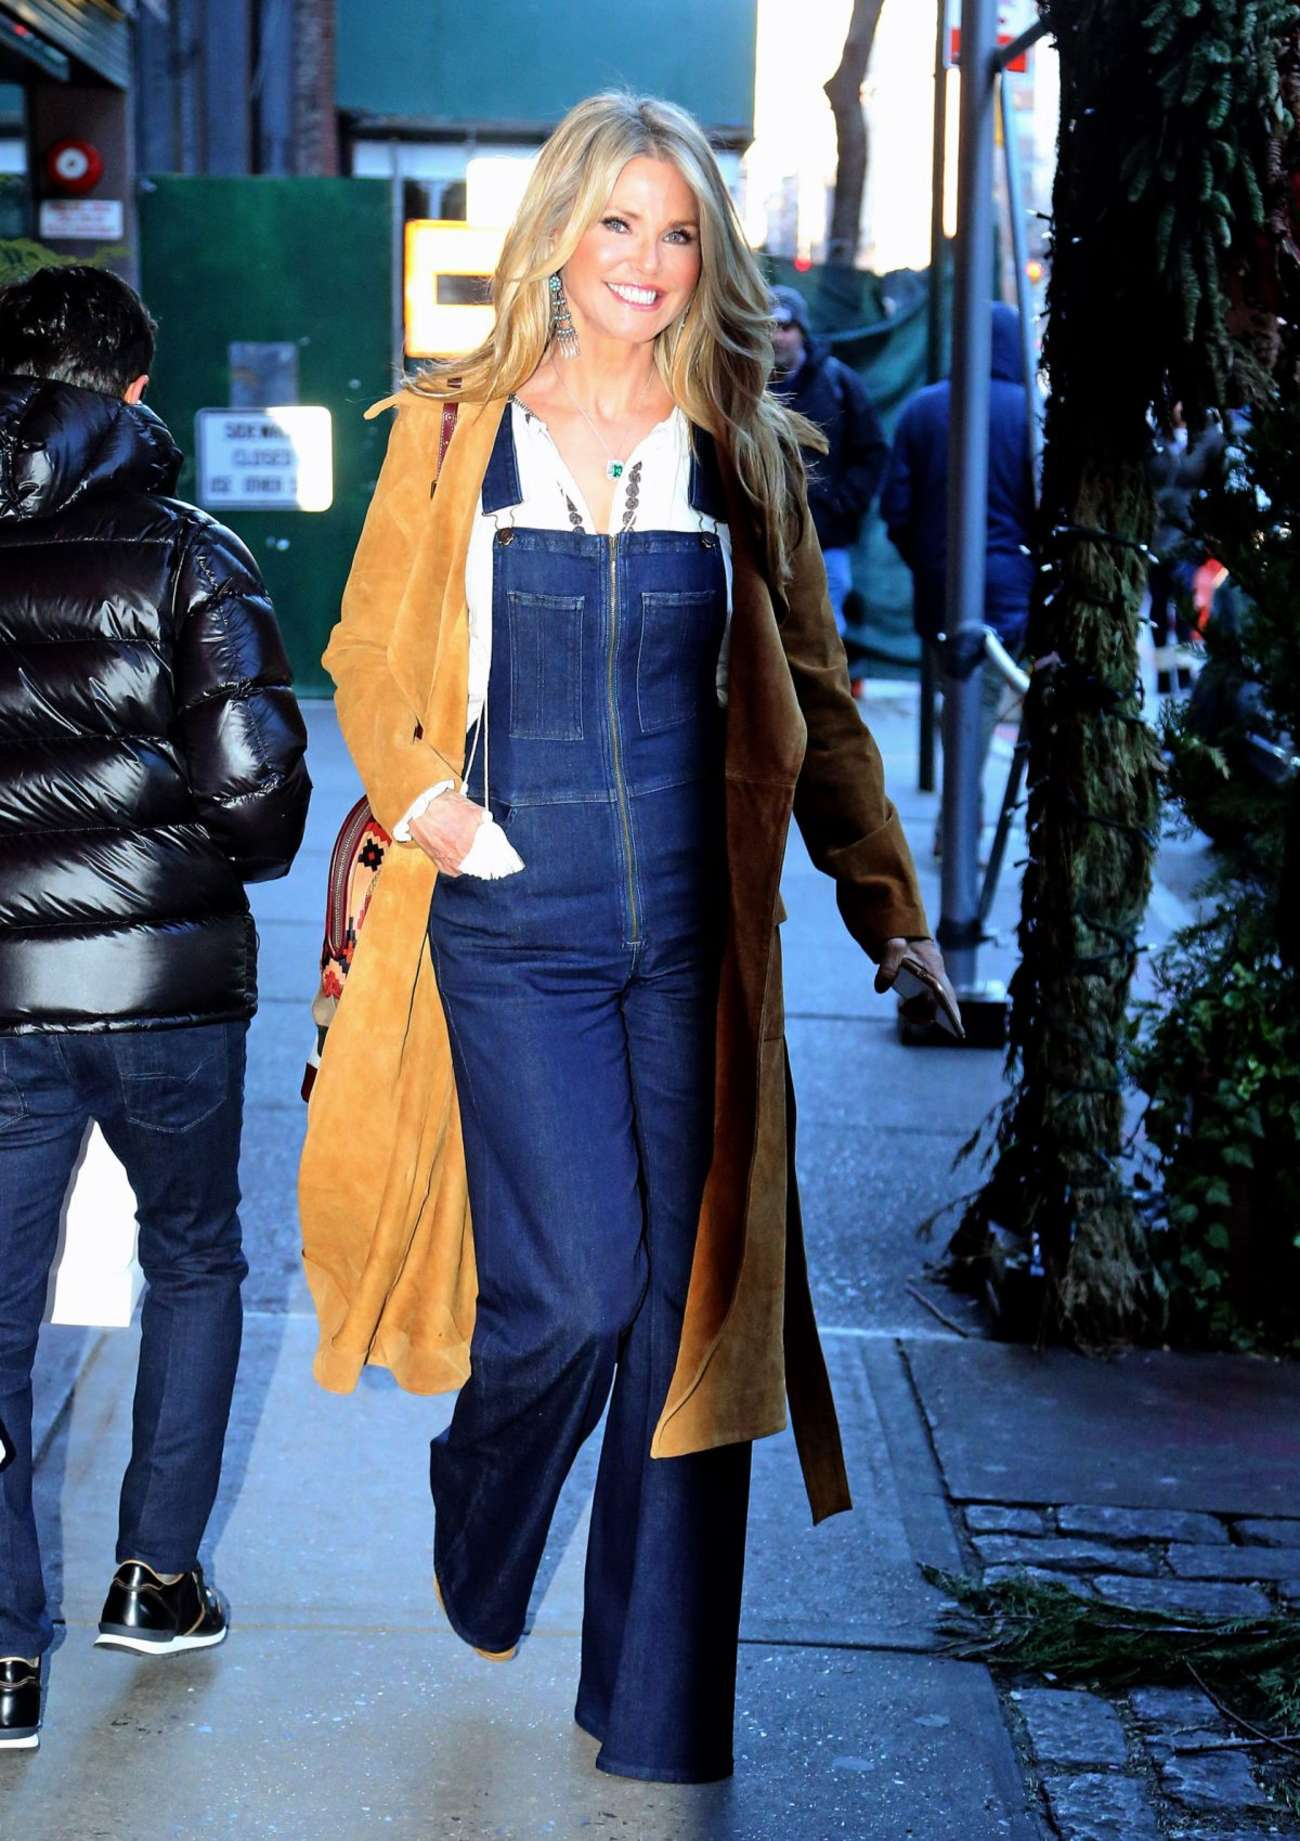 Christie Brinkley in Jeans Jumpsuit Out in New York